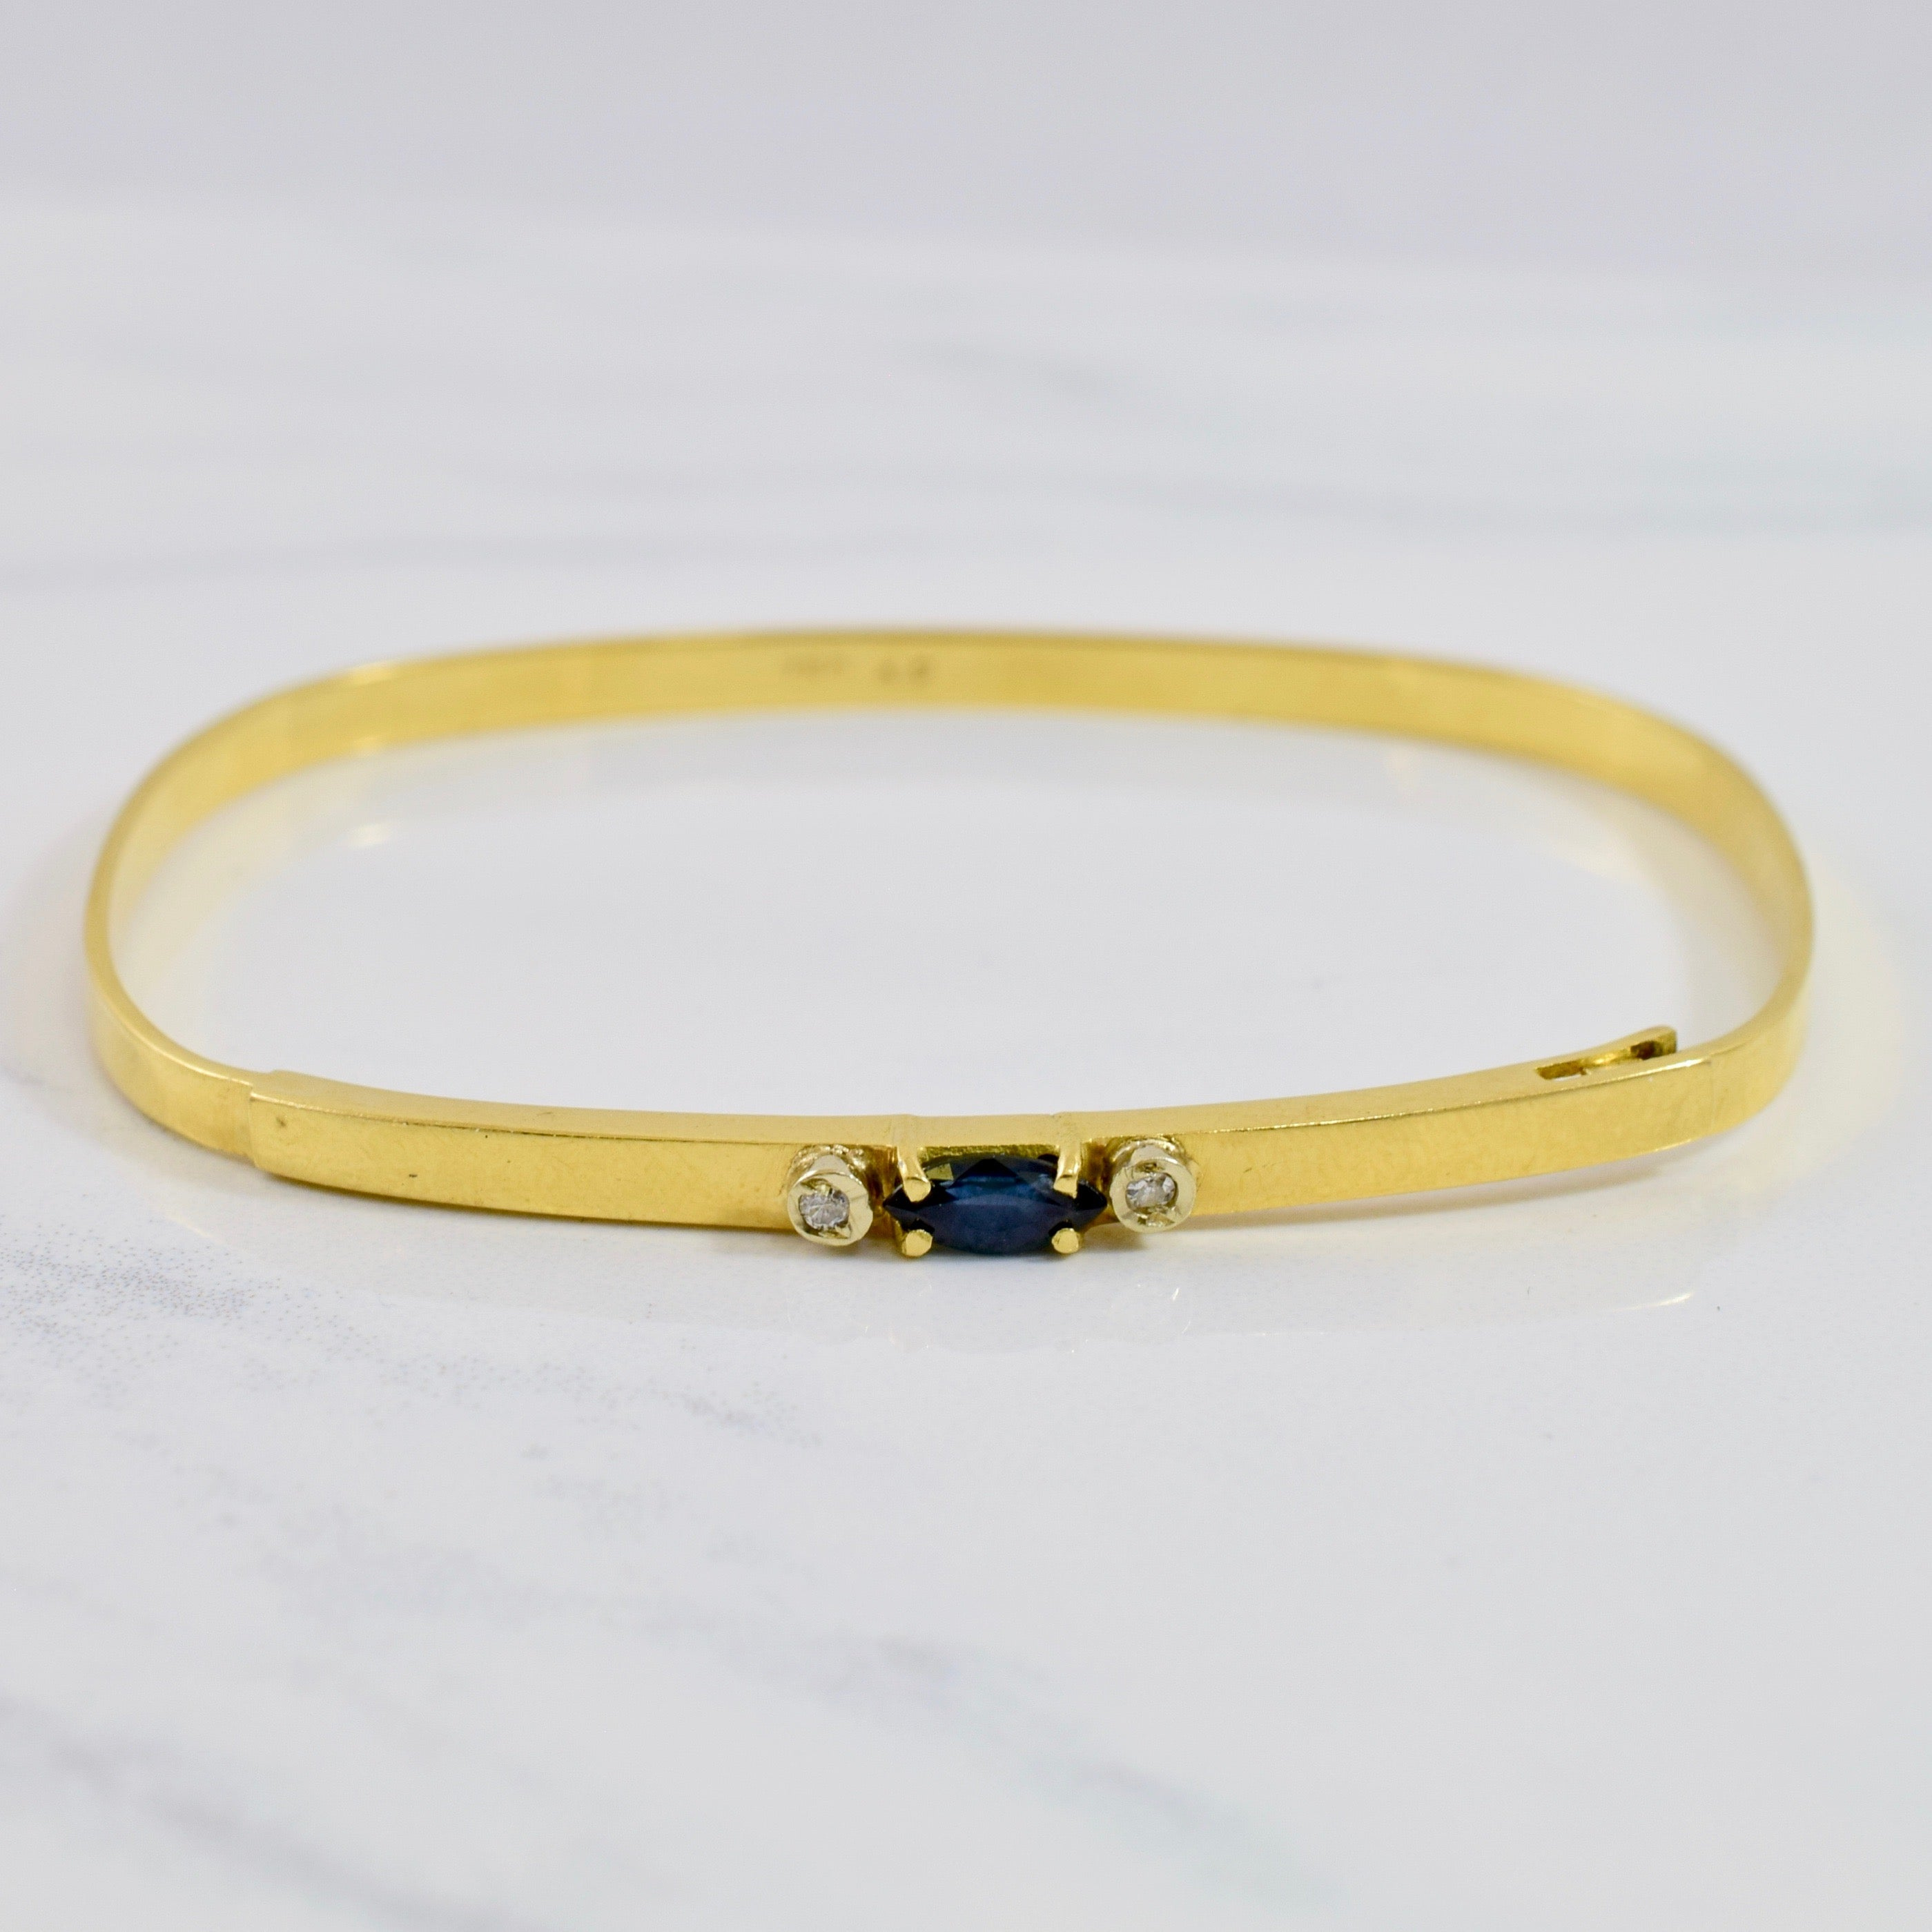 Petite Sapphire and Diamond Bangle | 0.03 ctw SZ 7 "